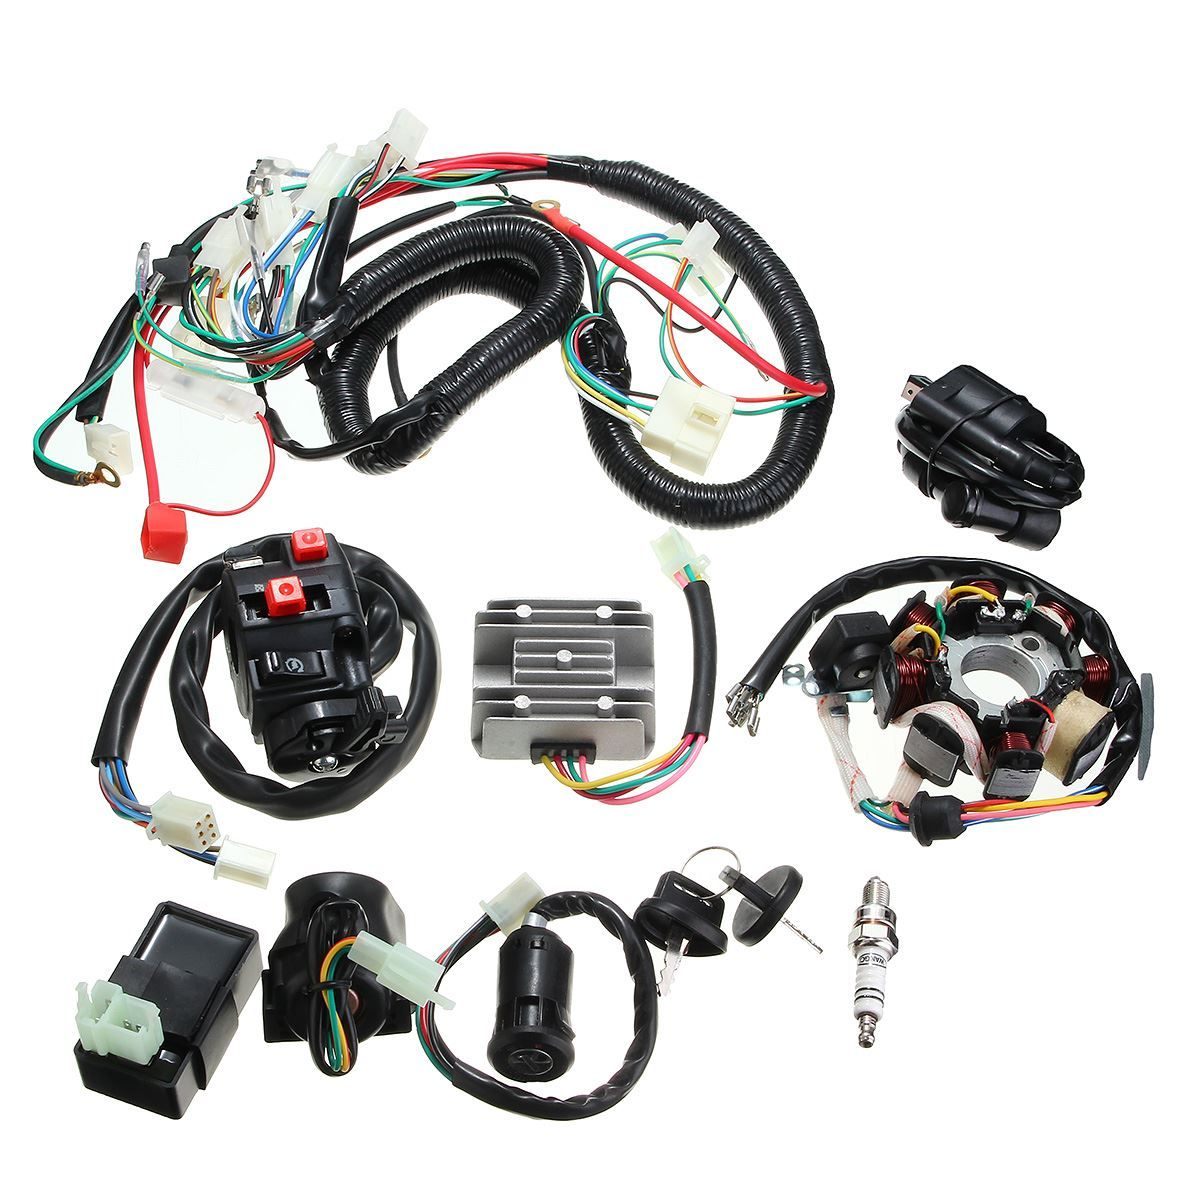 medium resolution of 1 set quad electric cdi coil wire harness stator assembly wiring set for 125 150 200 250cc push rod engine affiliate